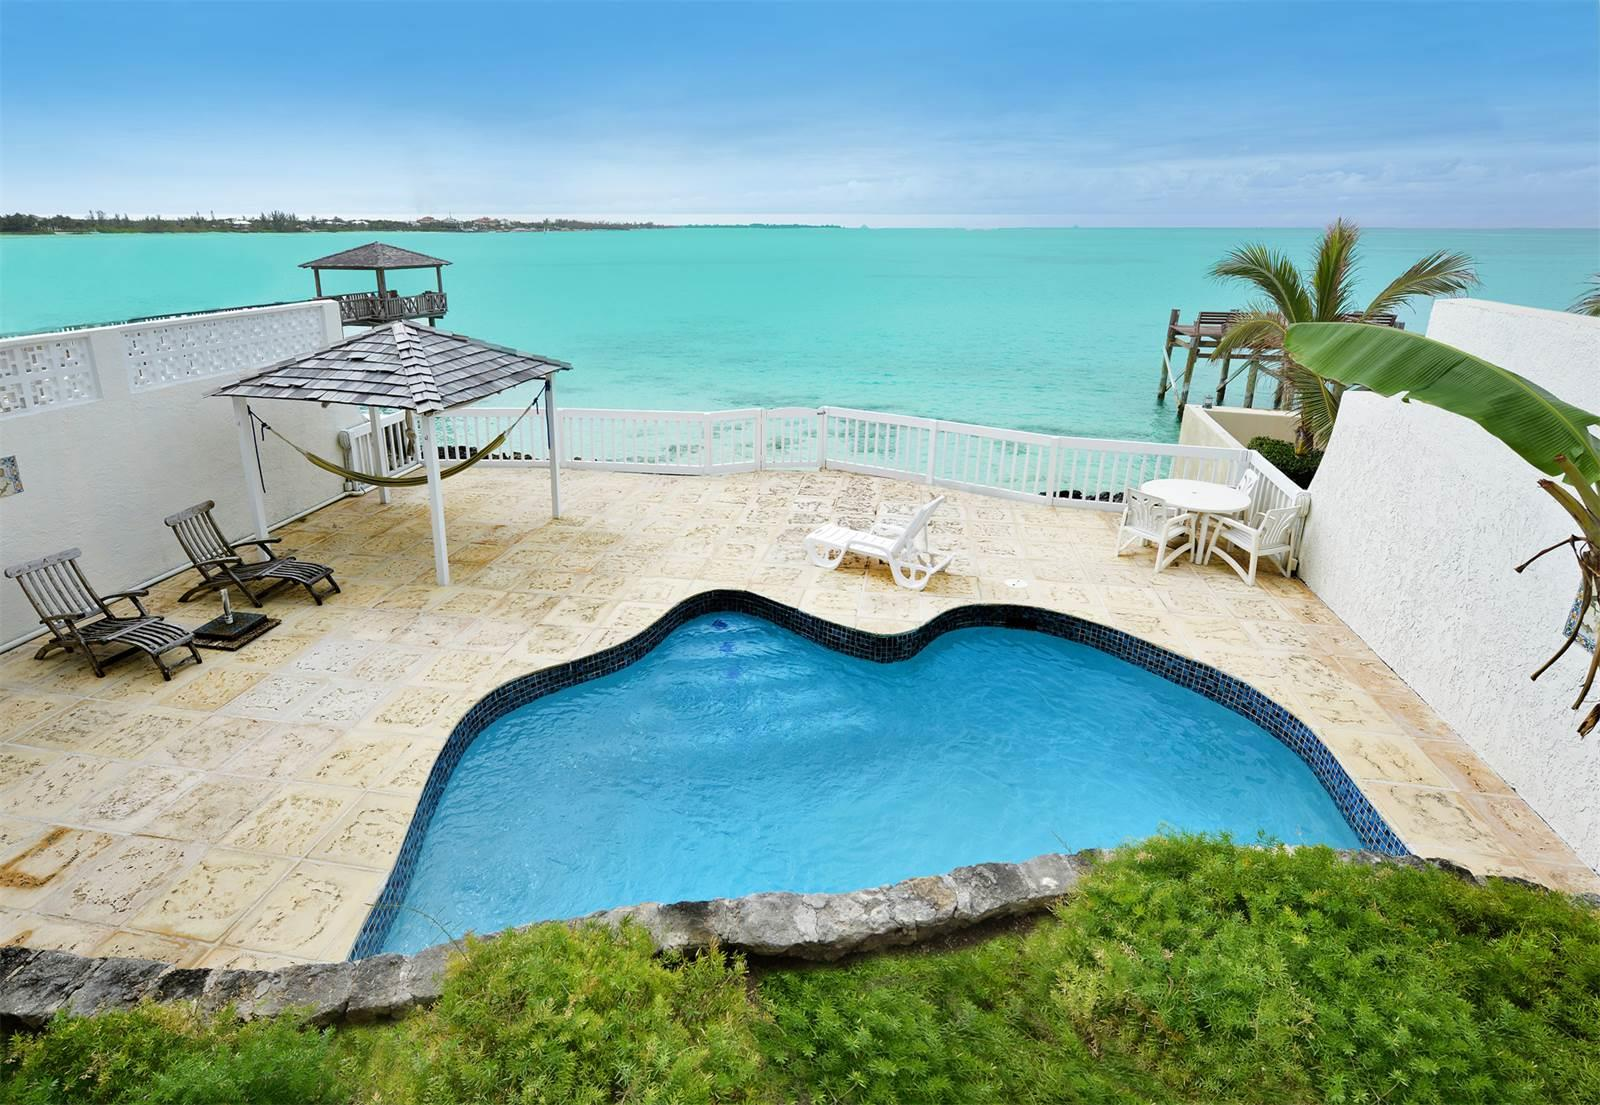 Additional photo for property listing at Old Fort Bay #5 Other Bahamas, Other Areas In The Bahamas Bahamas